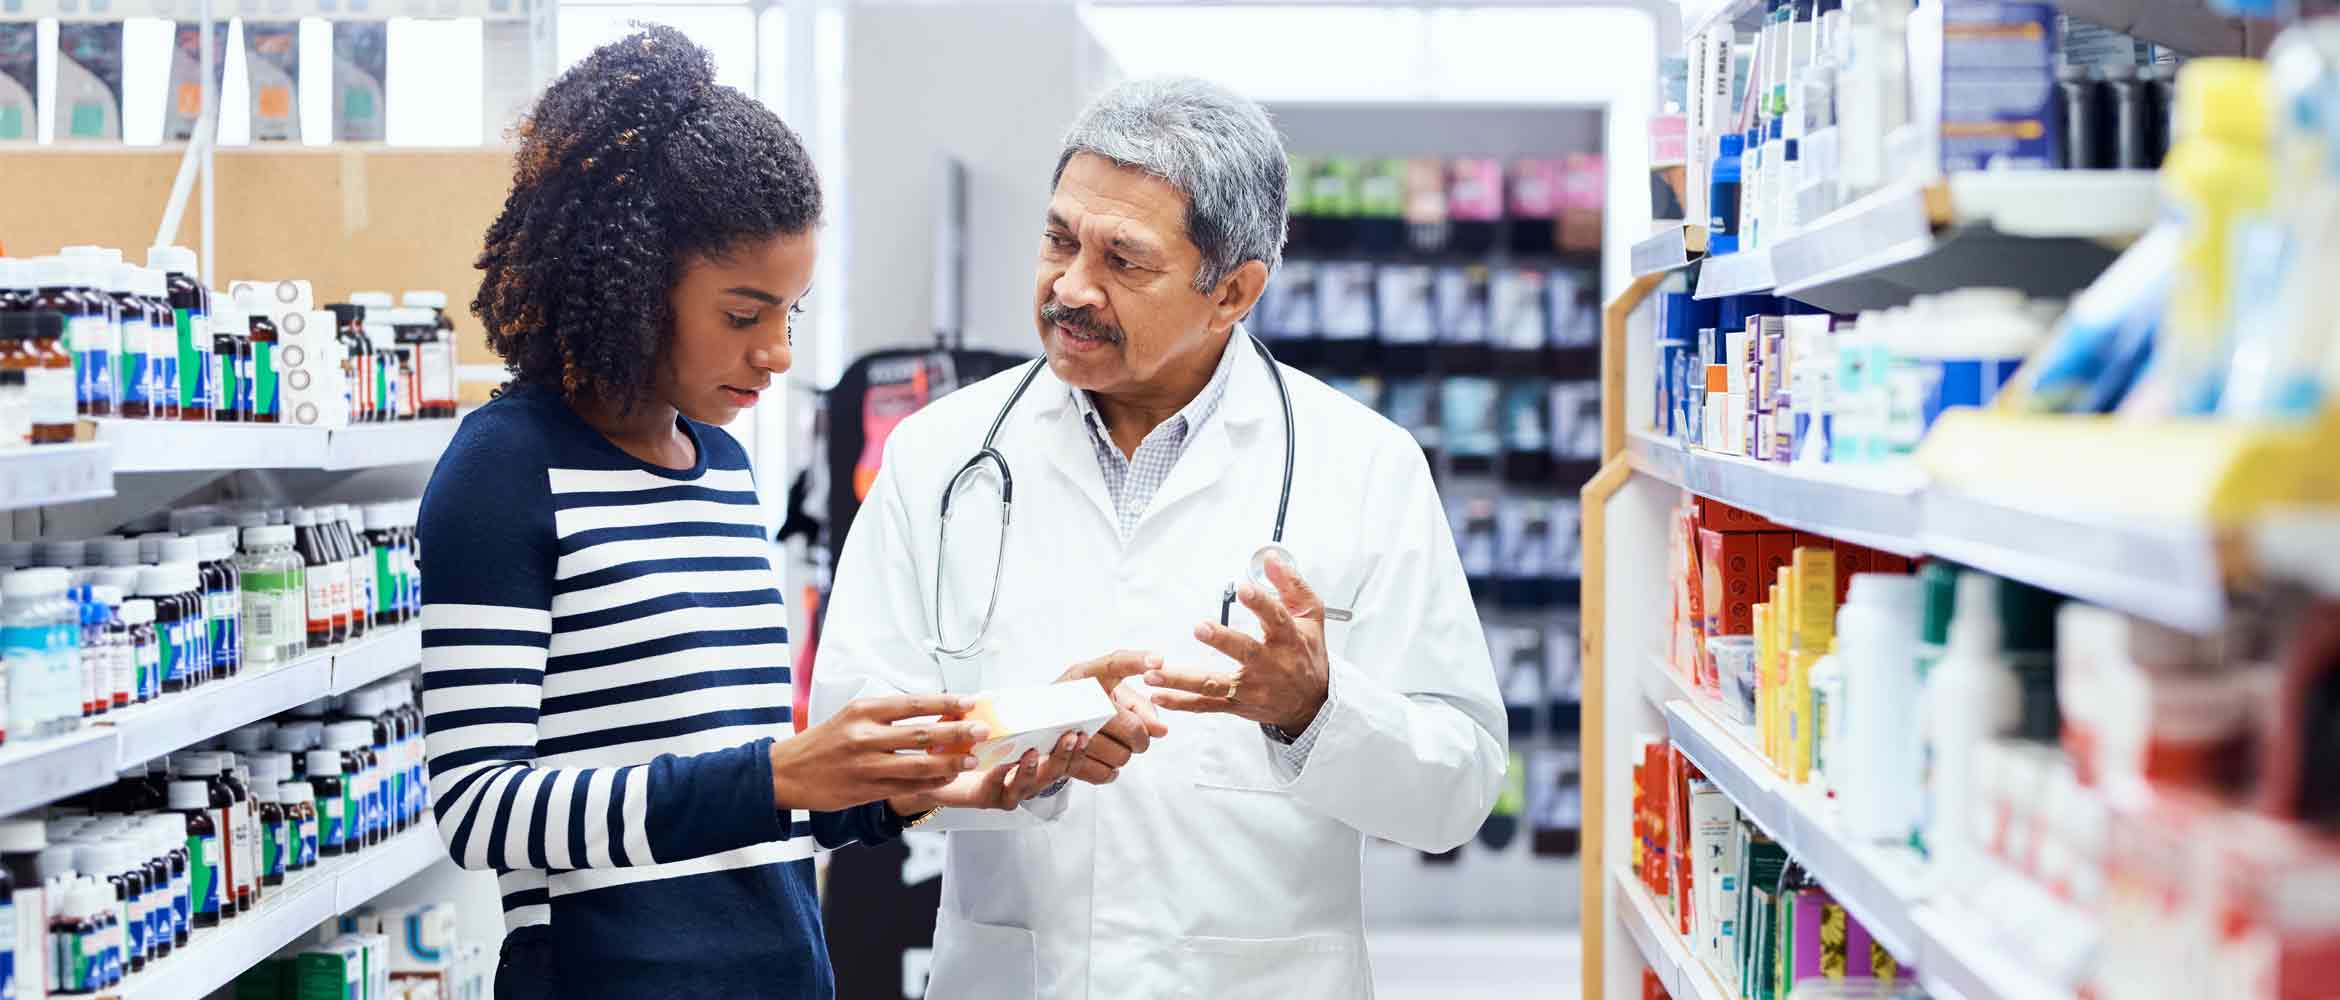 Pharmacist and a customer chatting about a product